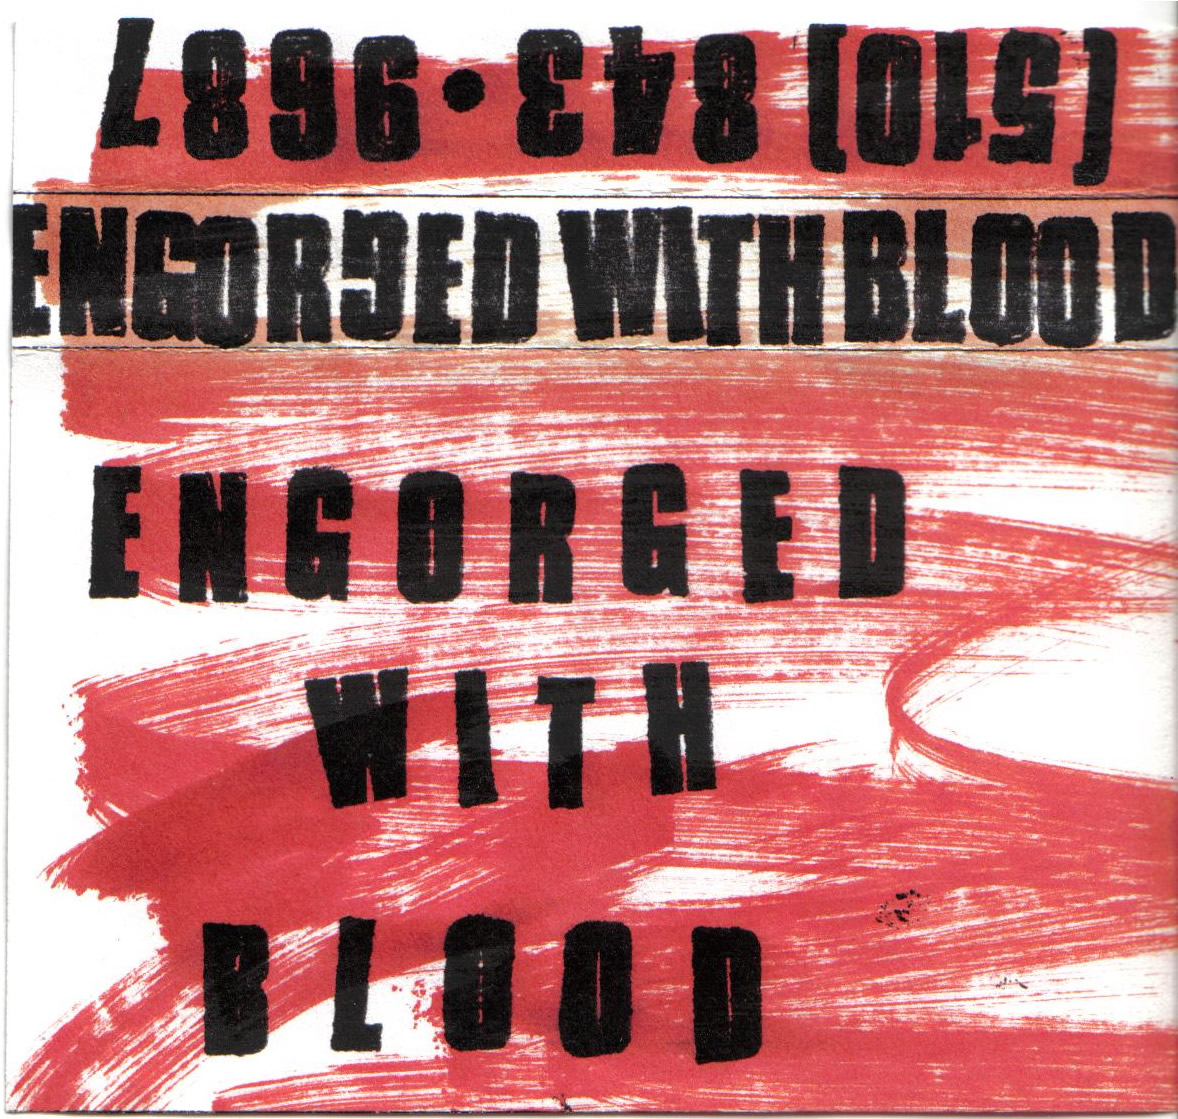 Engorged With Blood